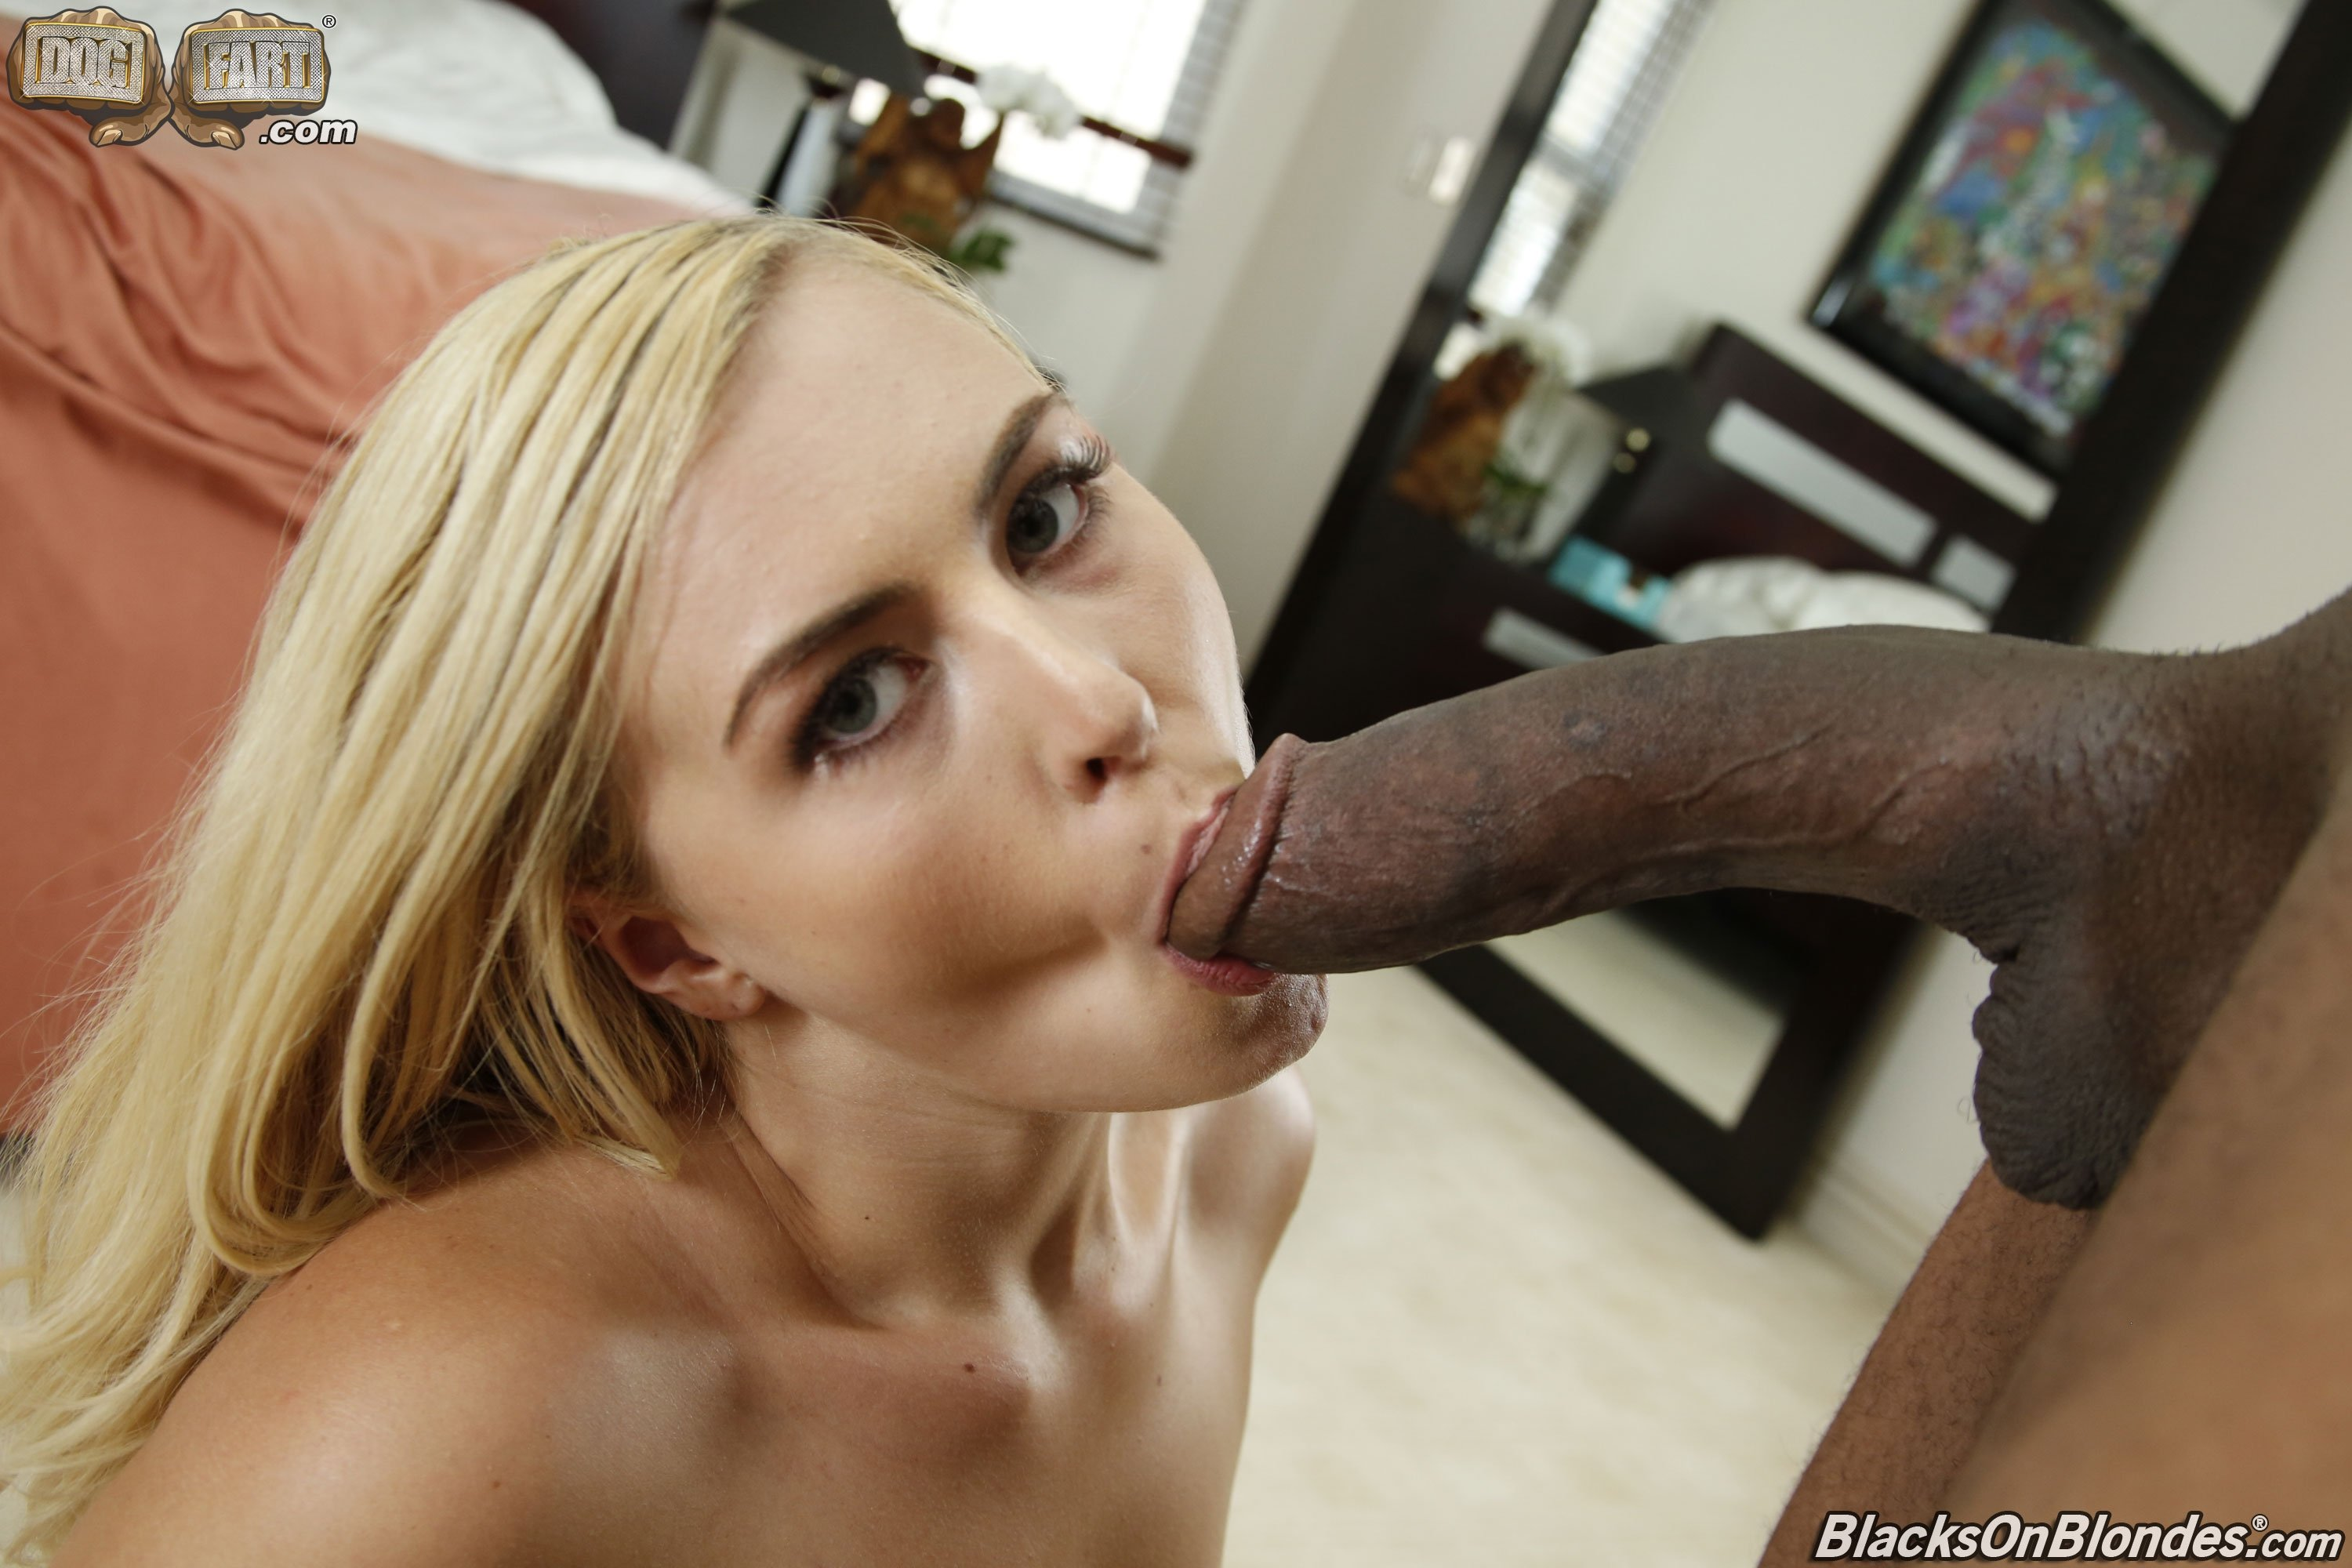 Xvideos anal oil #1